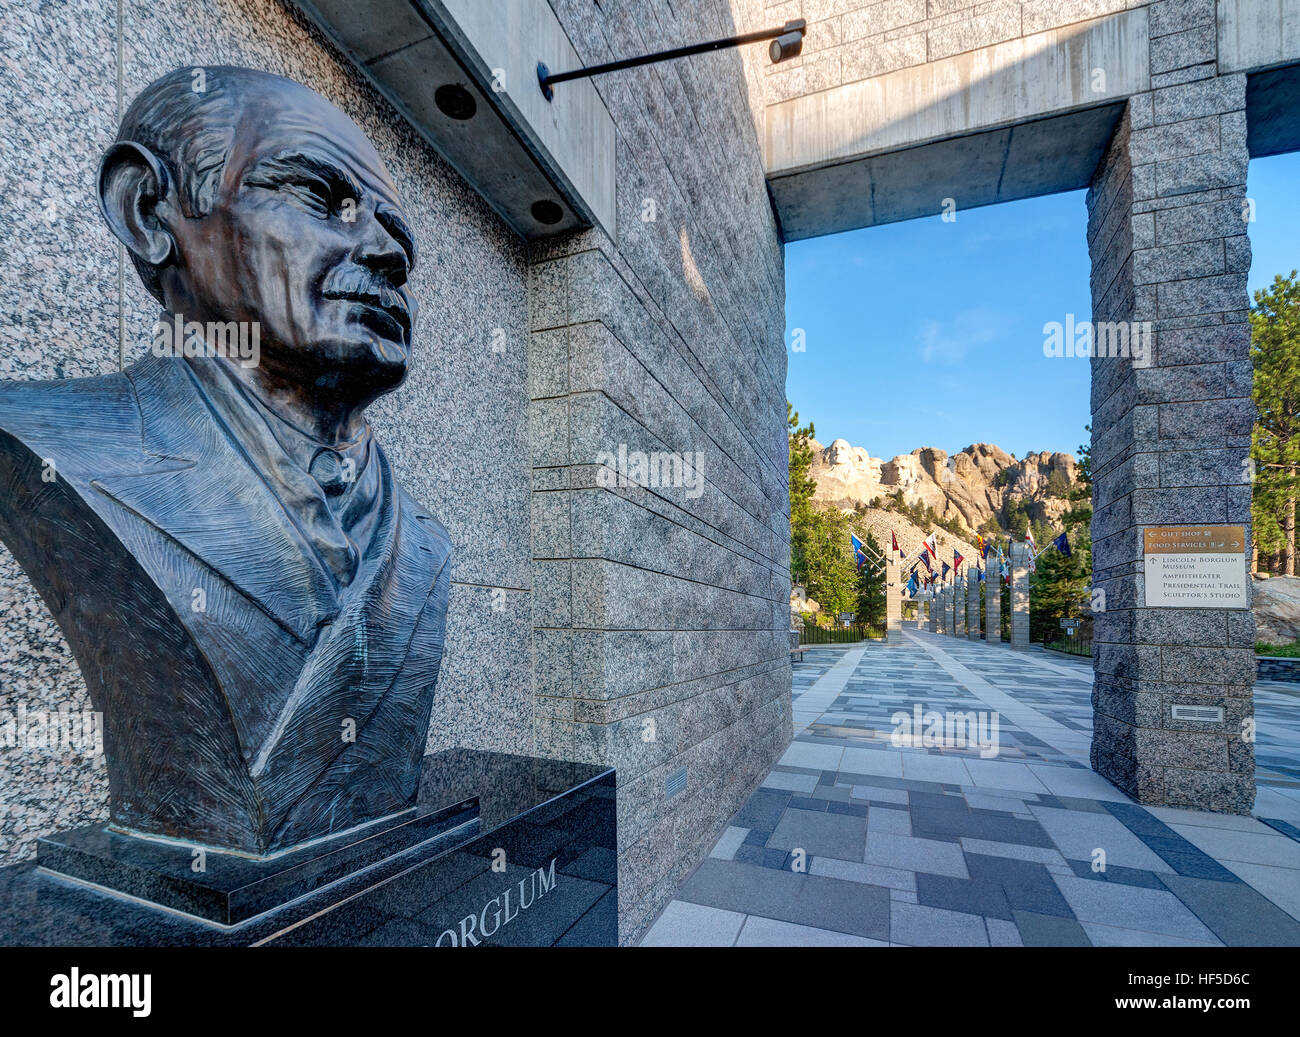 Mount Rushmore National Memorial Visitor's Center with portrait bust of Gutzon Borglum sculptor of Mt Rushmore, - Stock Image